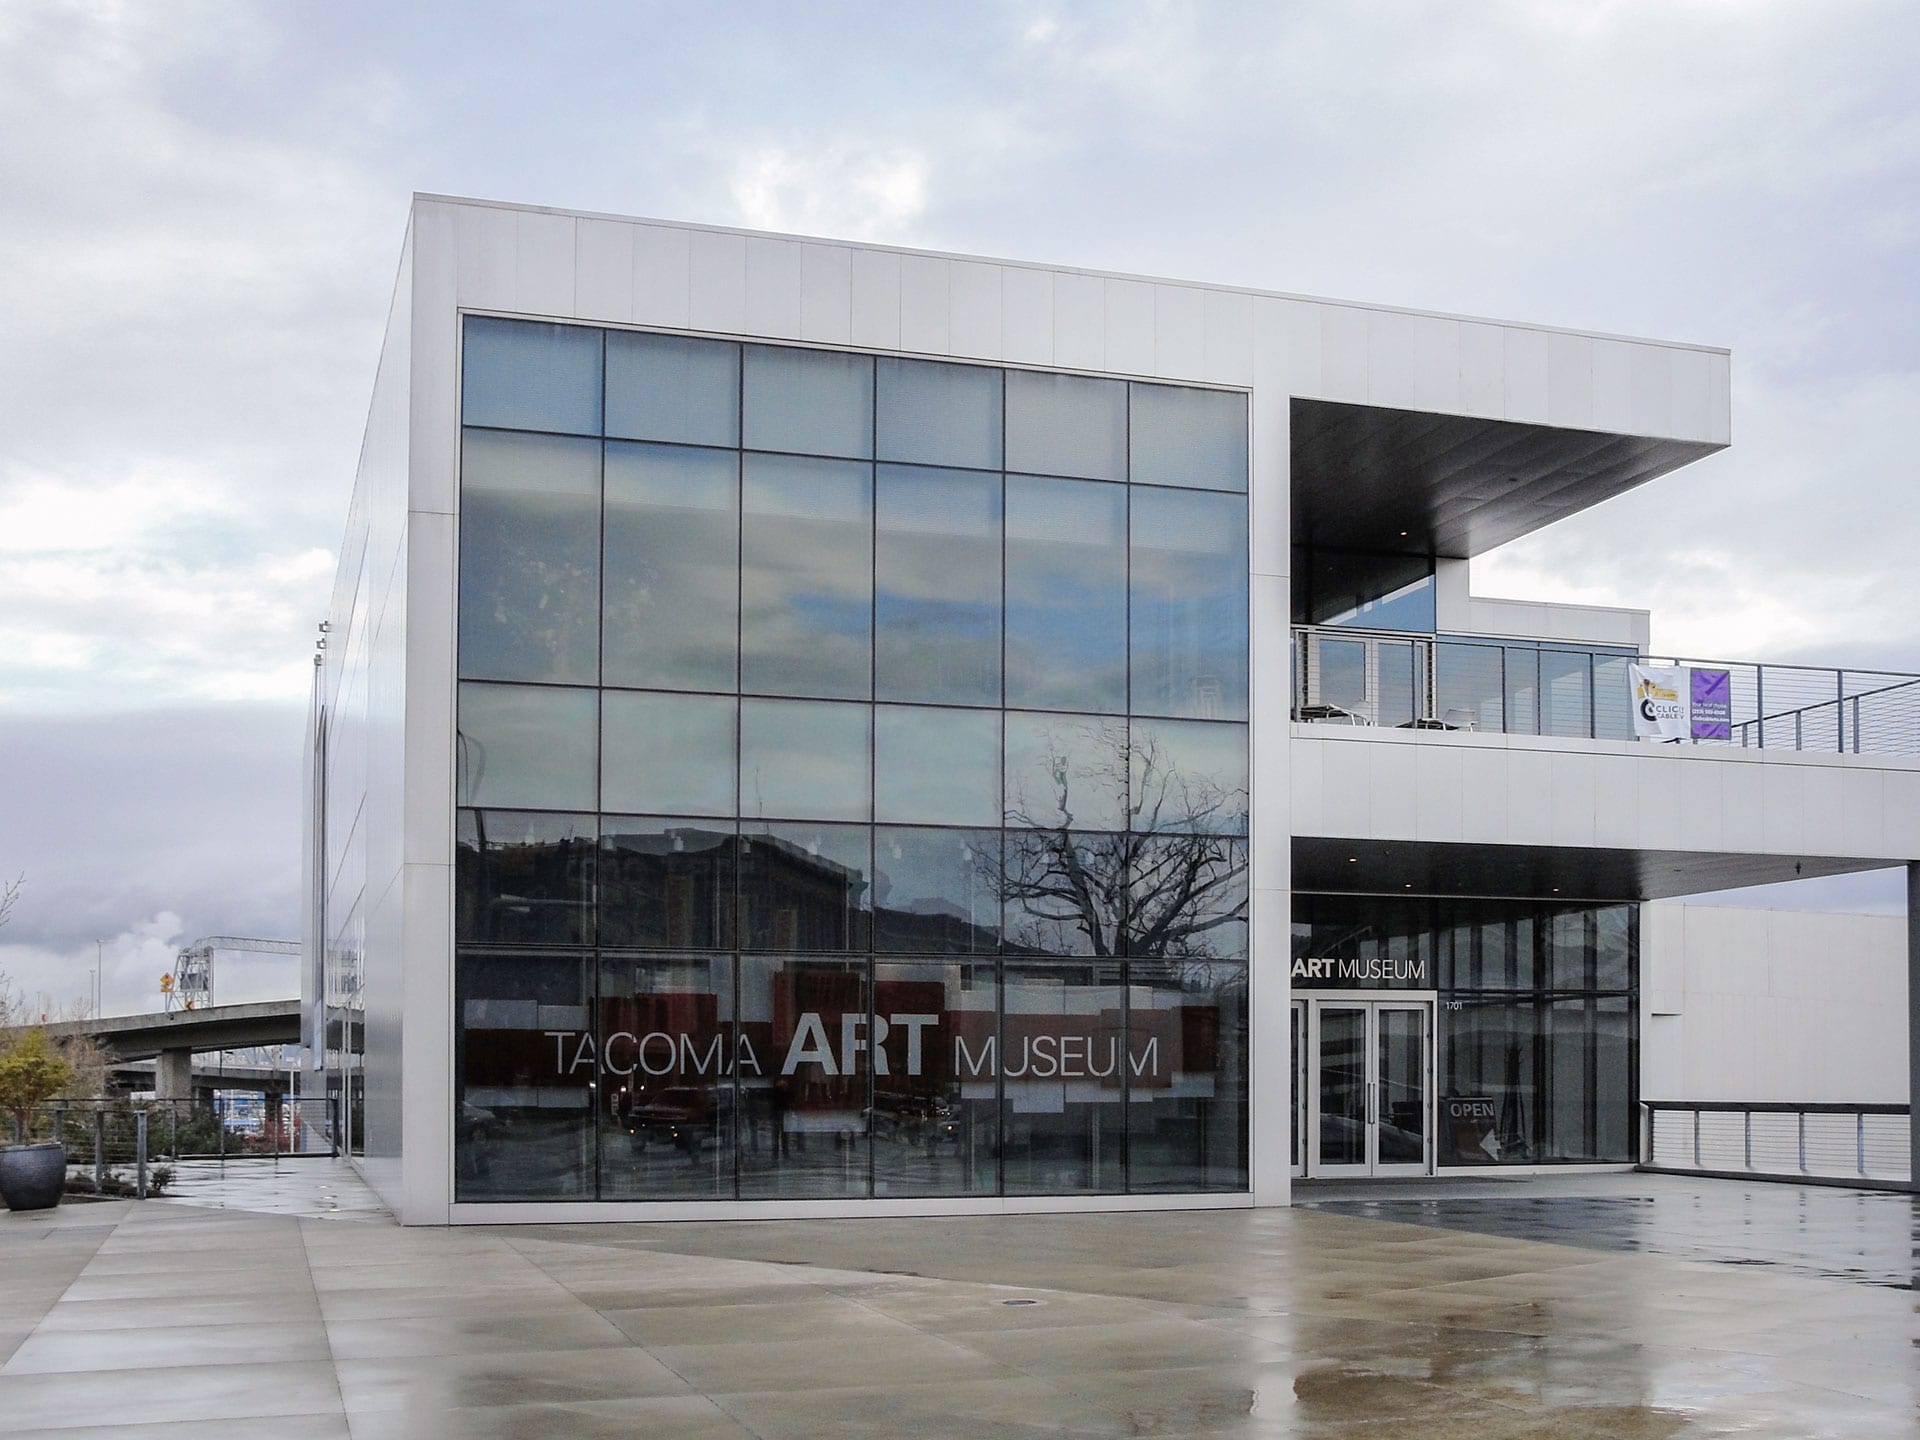 The Tacoma Art Museum in downtown Tacoma, Washington.